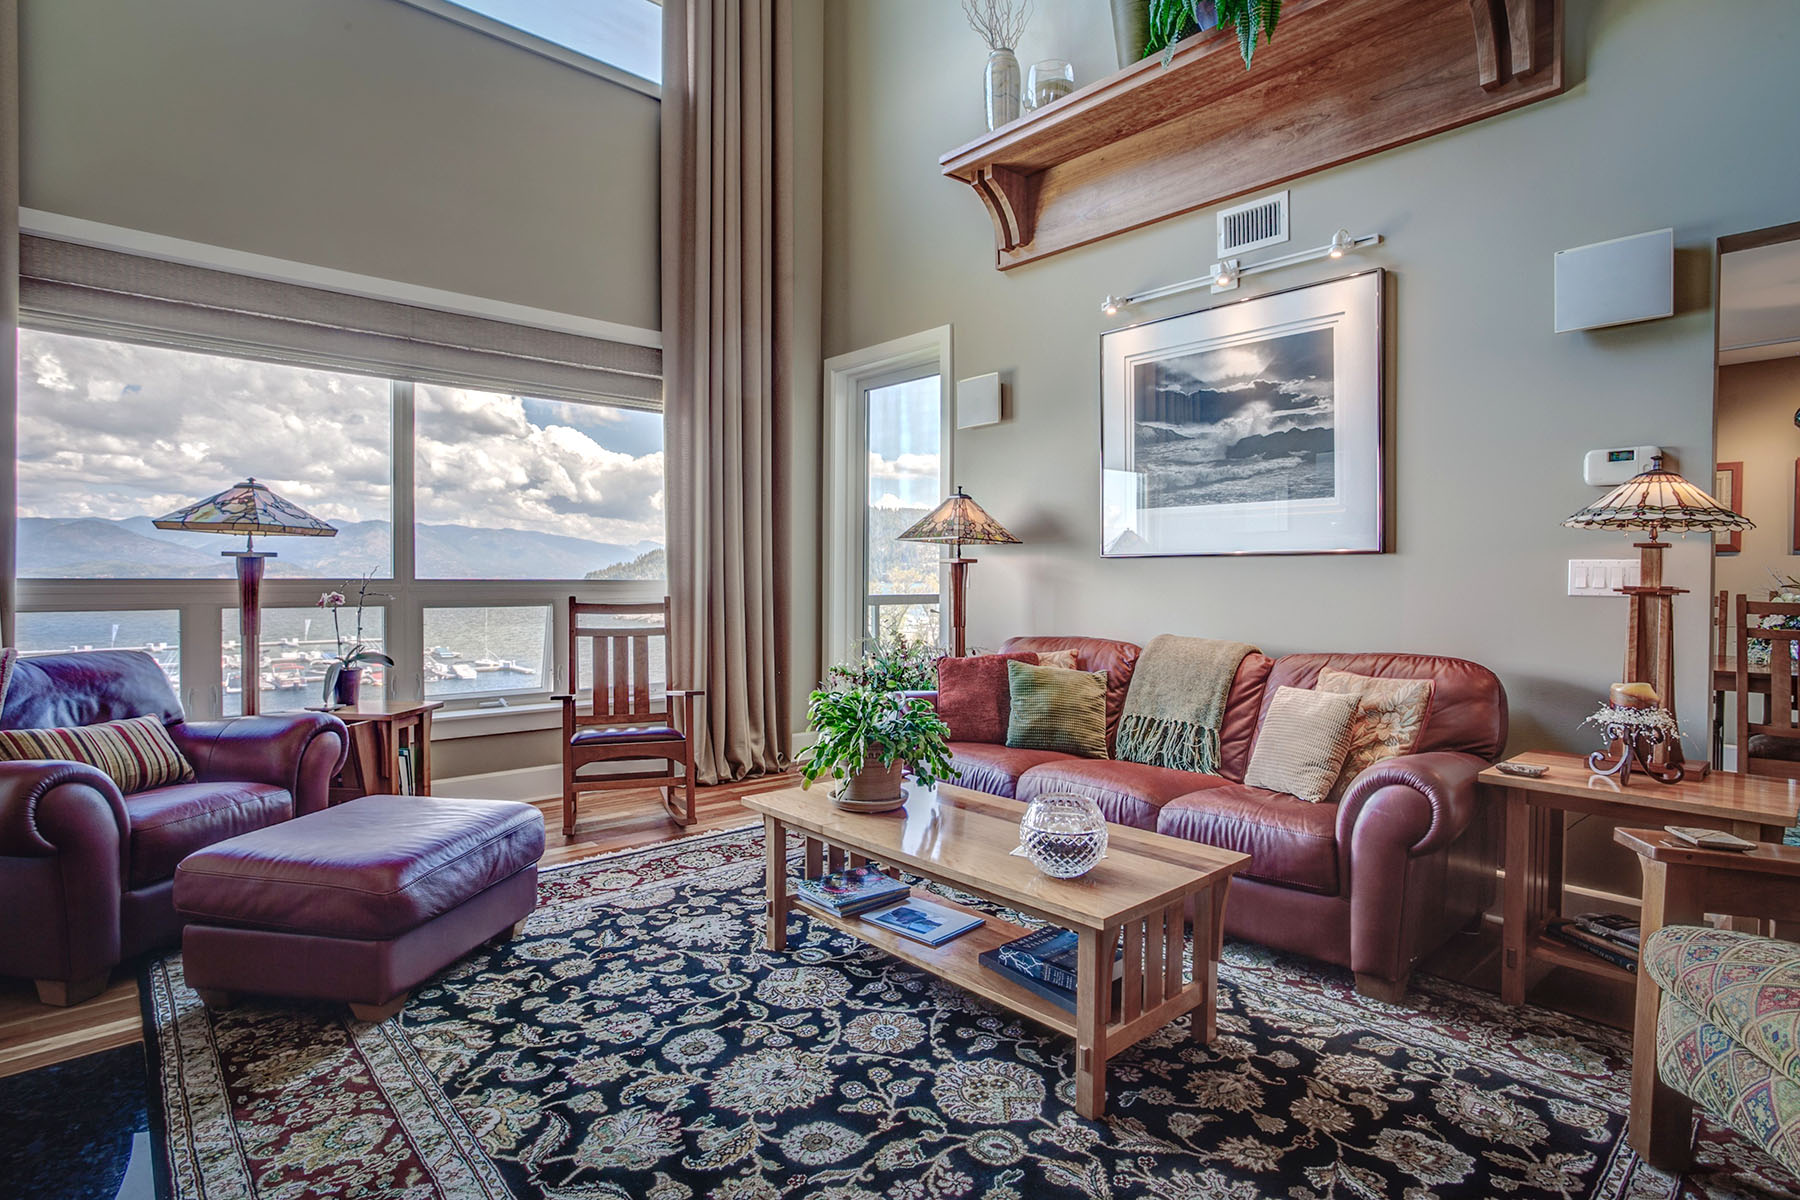 Condominium for Sale at Elegant Top-floor Penthouse 412 Sandpoint Avenue Unit #333 Sandpoint, Idaho 83864 United States